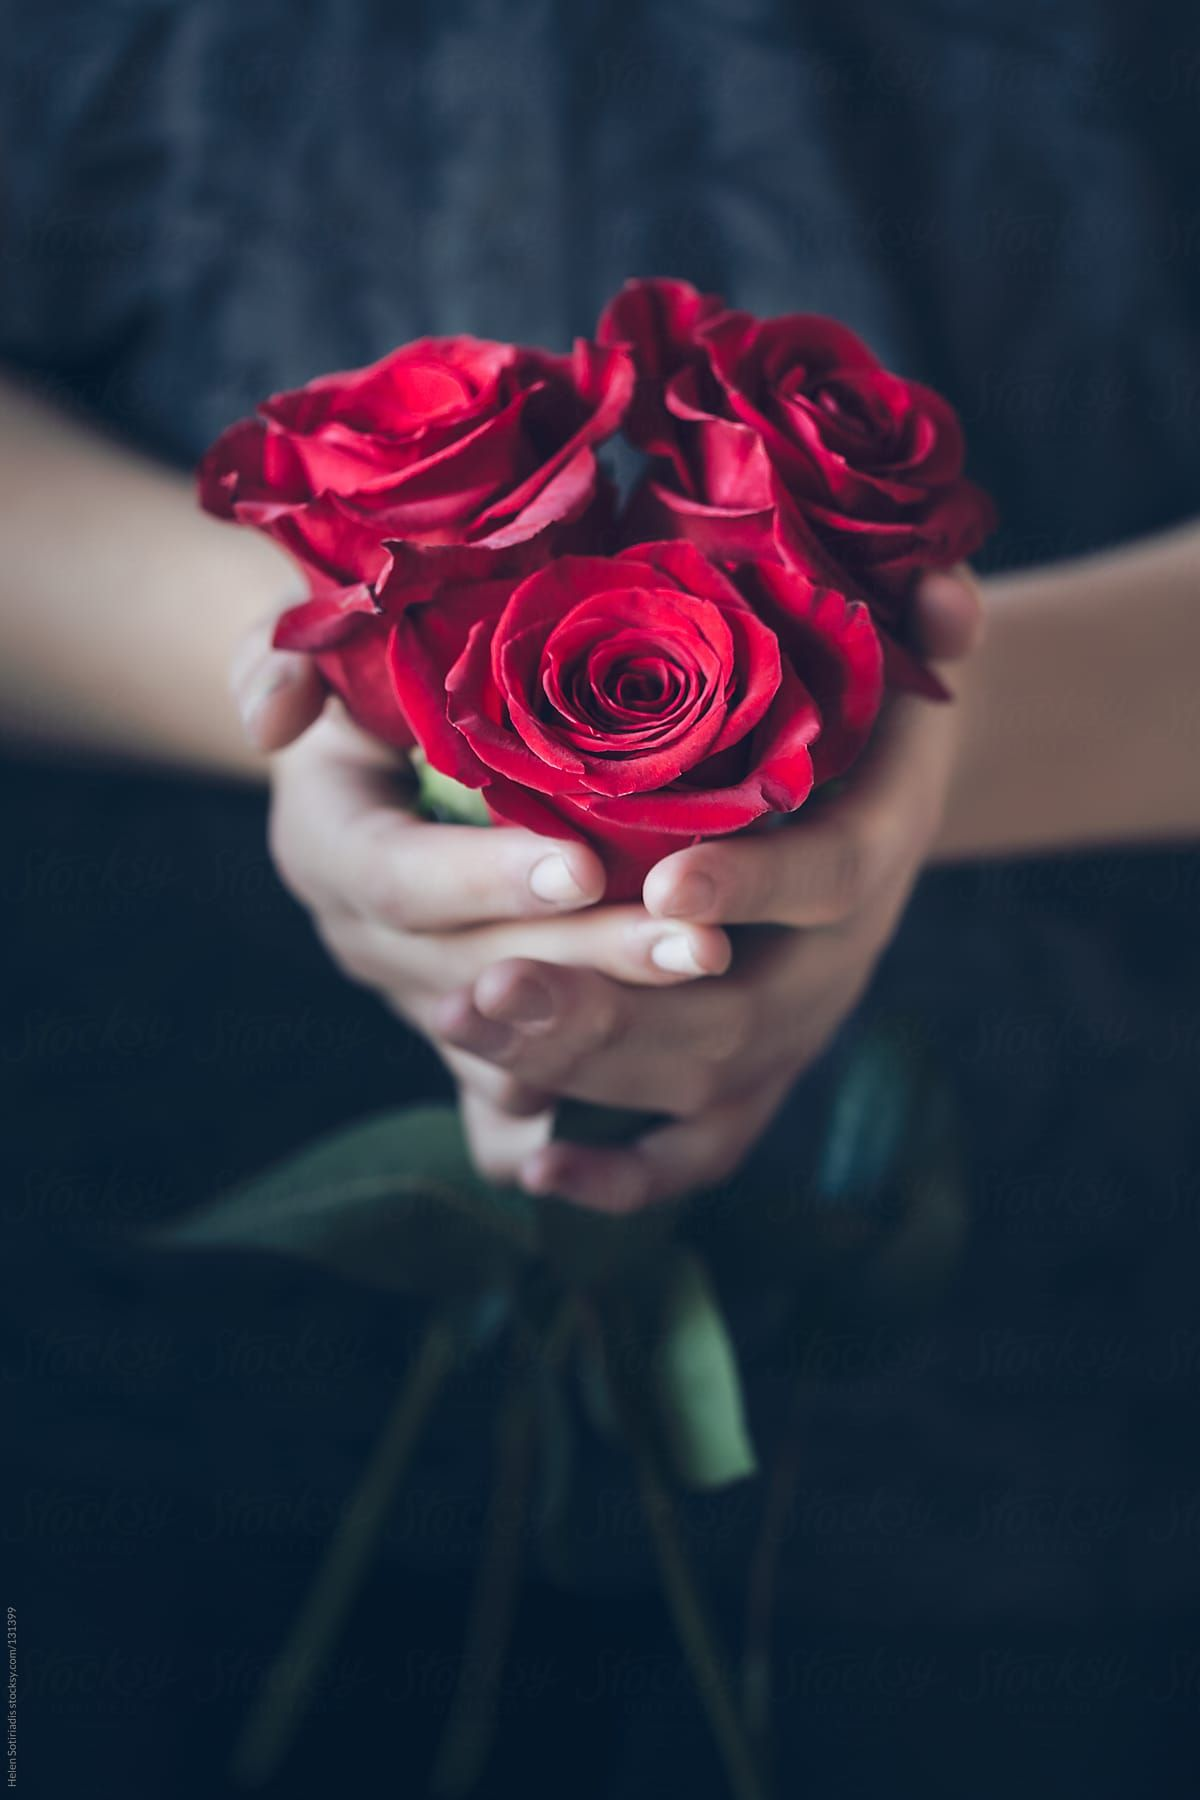 Red Roses Download This High Resolution Stock Photo By Helen Sotiriadis From Stocksy United Red Roses Wallpaper Beautiful Red Roses Beautiful Rose Flowers